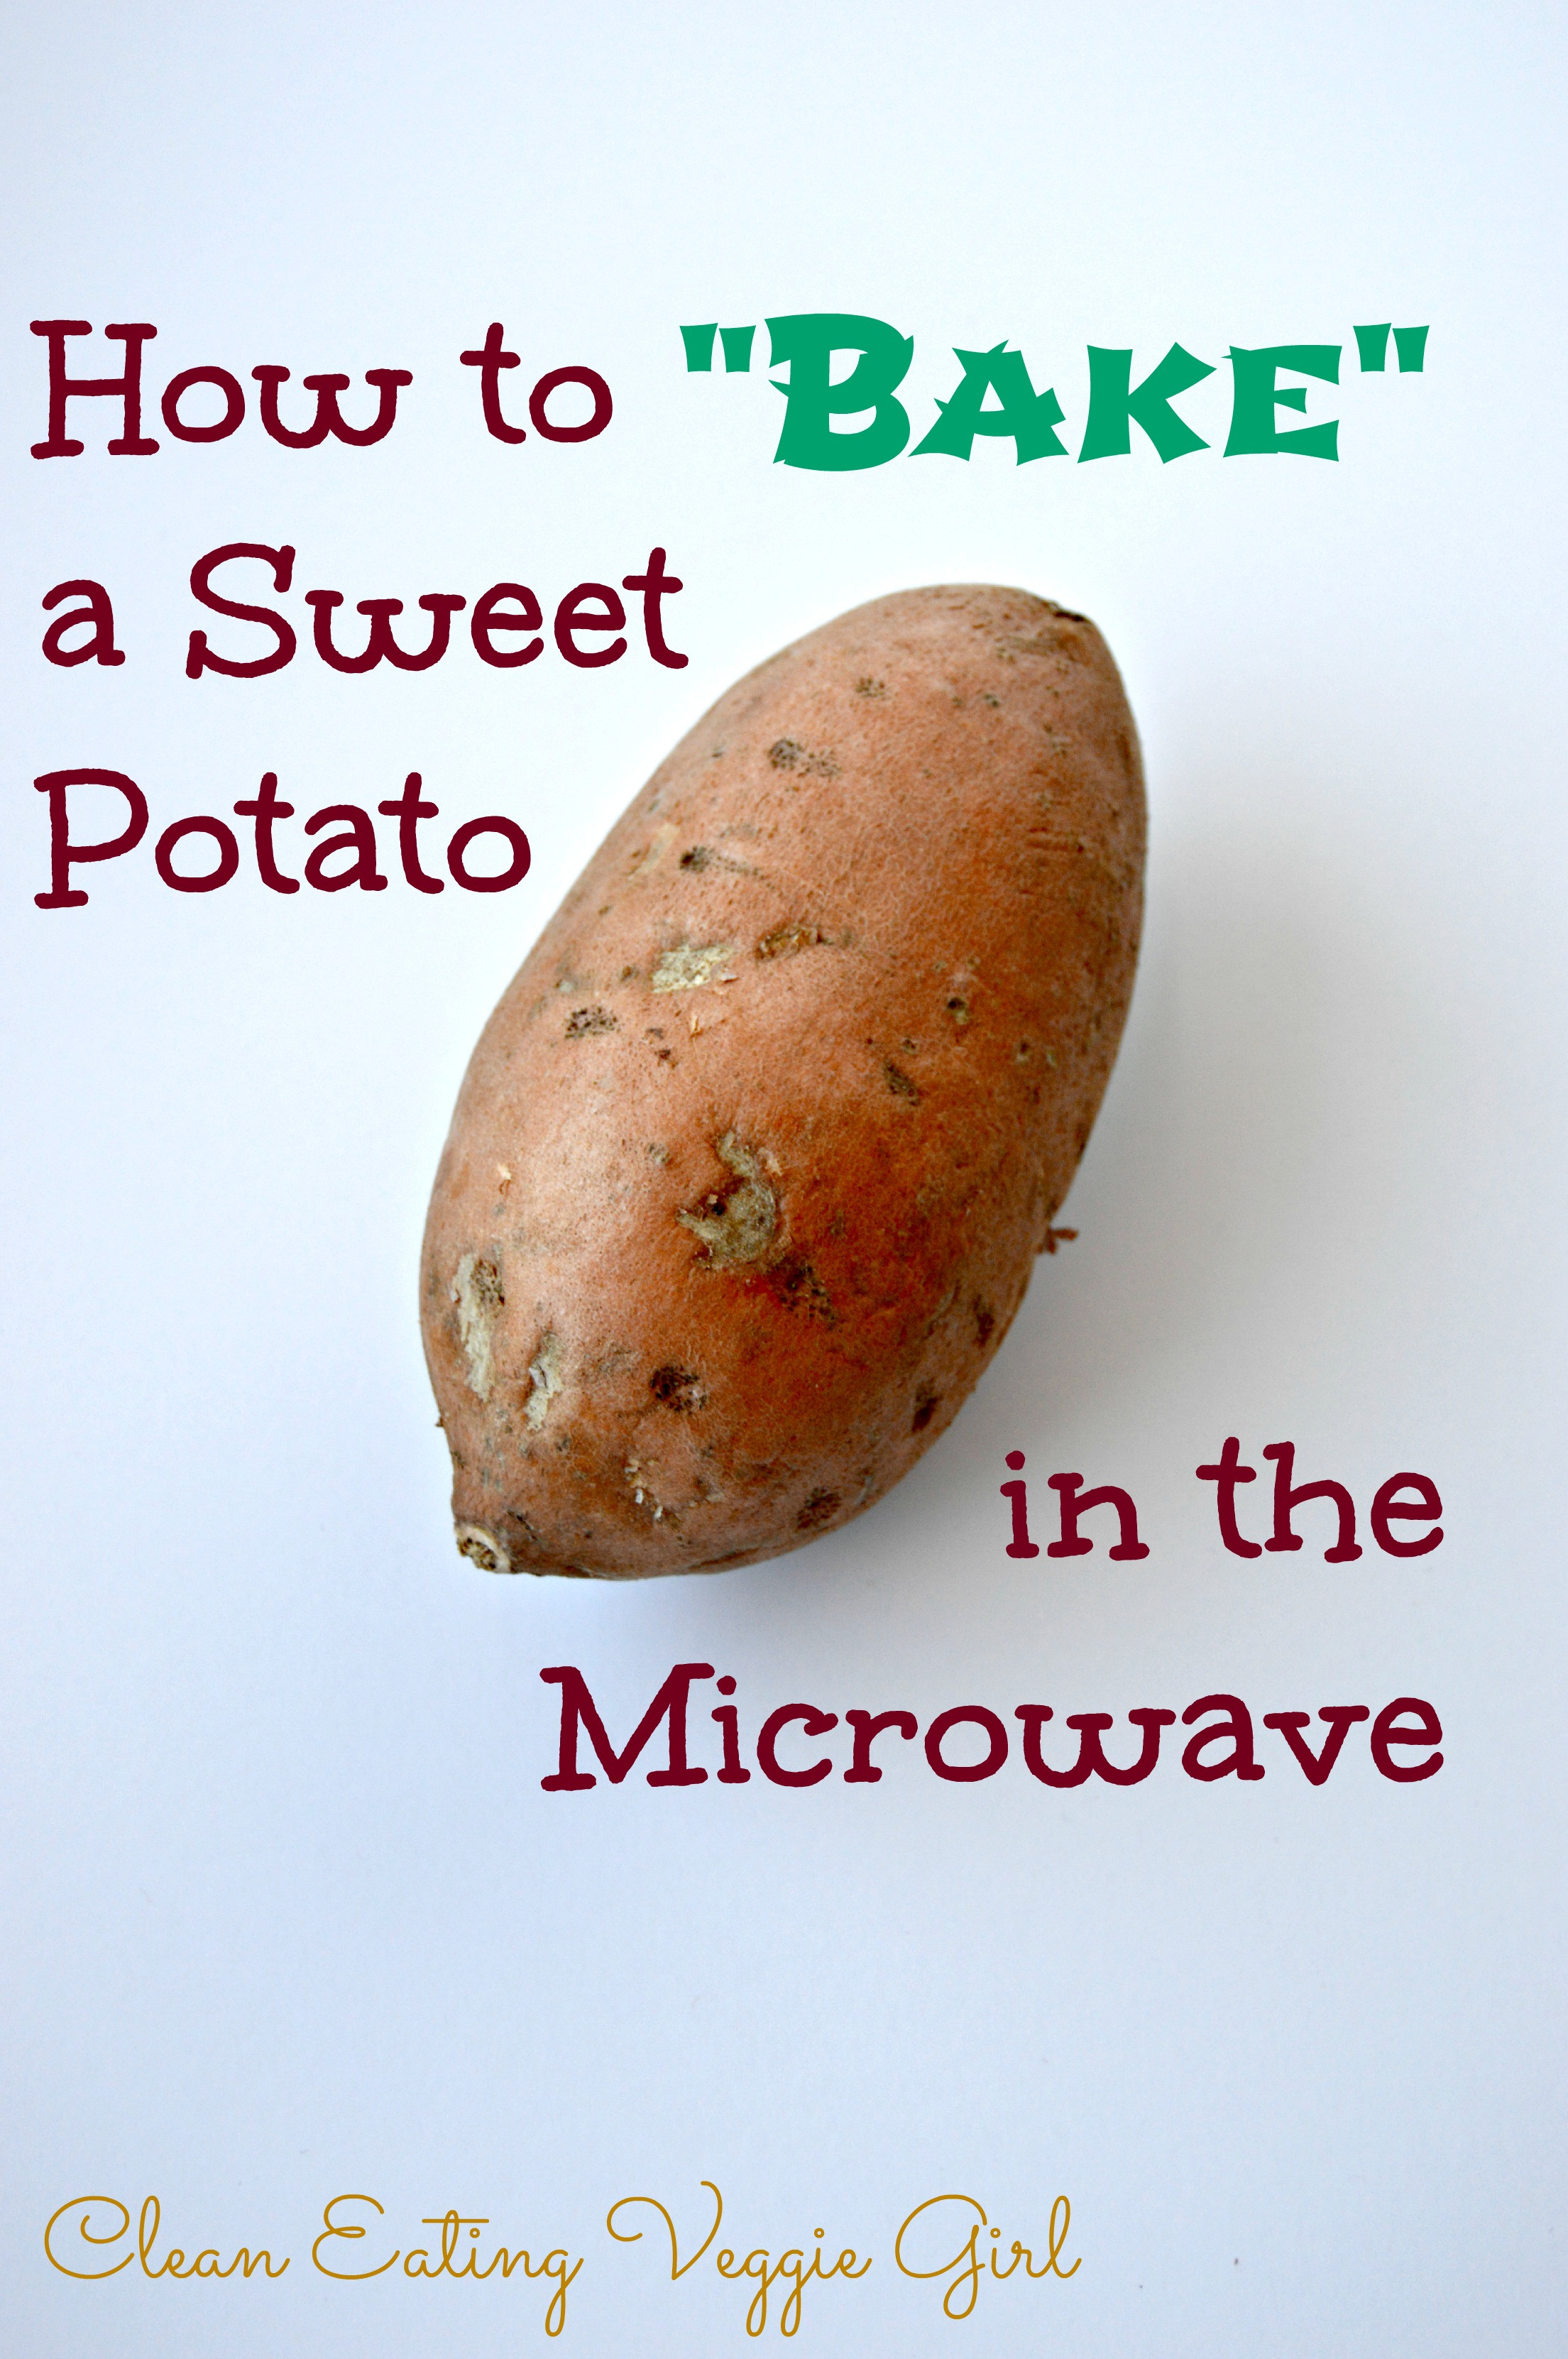 How Long To Cook Sweet Potato In Microwave  How to Make a Baked Sweet Potato in the Microwave Clean